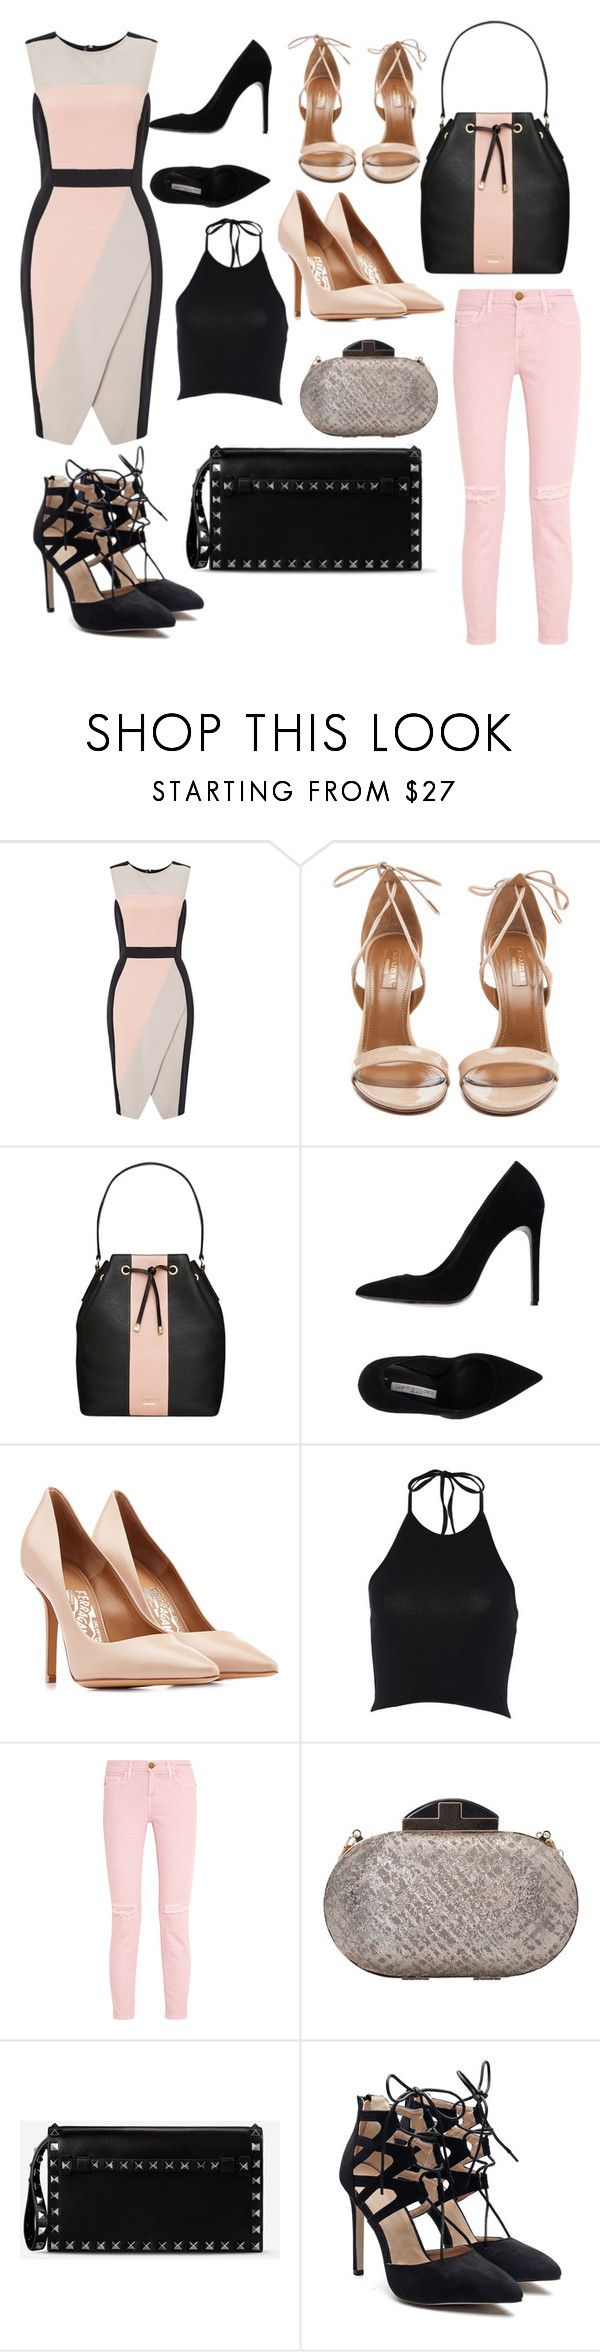 """""""Black + Pink = ❤️"""" by owl33546 ❤ liked on Polyvore featuring Miss Selfridge, Aquazzura, Kate Spade, Gianmarco Lorenzi, Salvatore Ferragamo, Current/Elliott, French Connection and Valentino"""